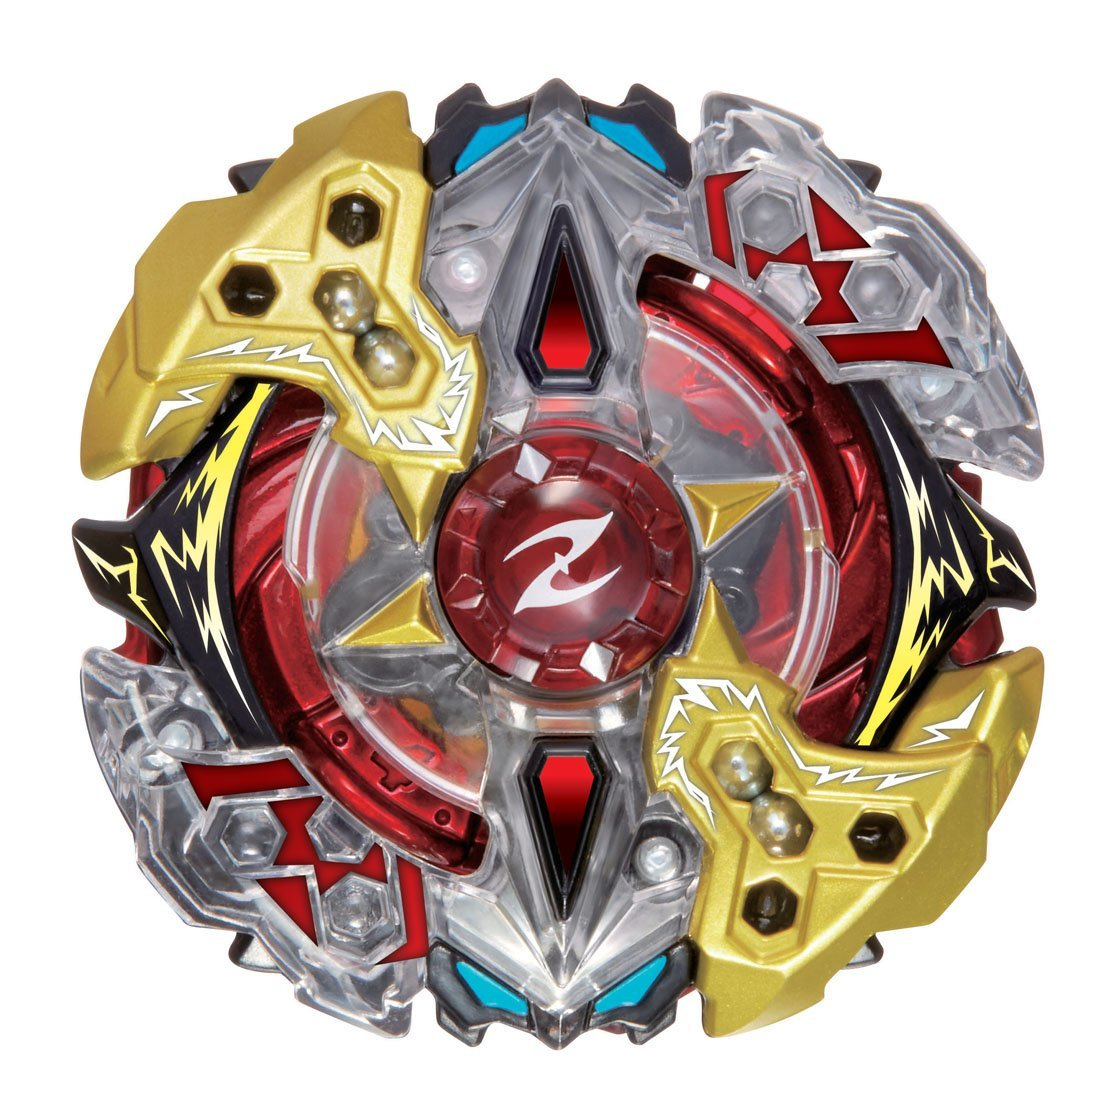 Galaxy zeus 4meteor planet beyblade wiki fandom powered by wikia - Toupi blade blade ...